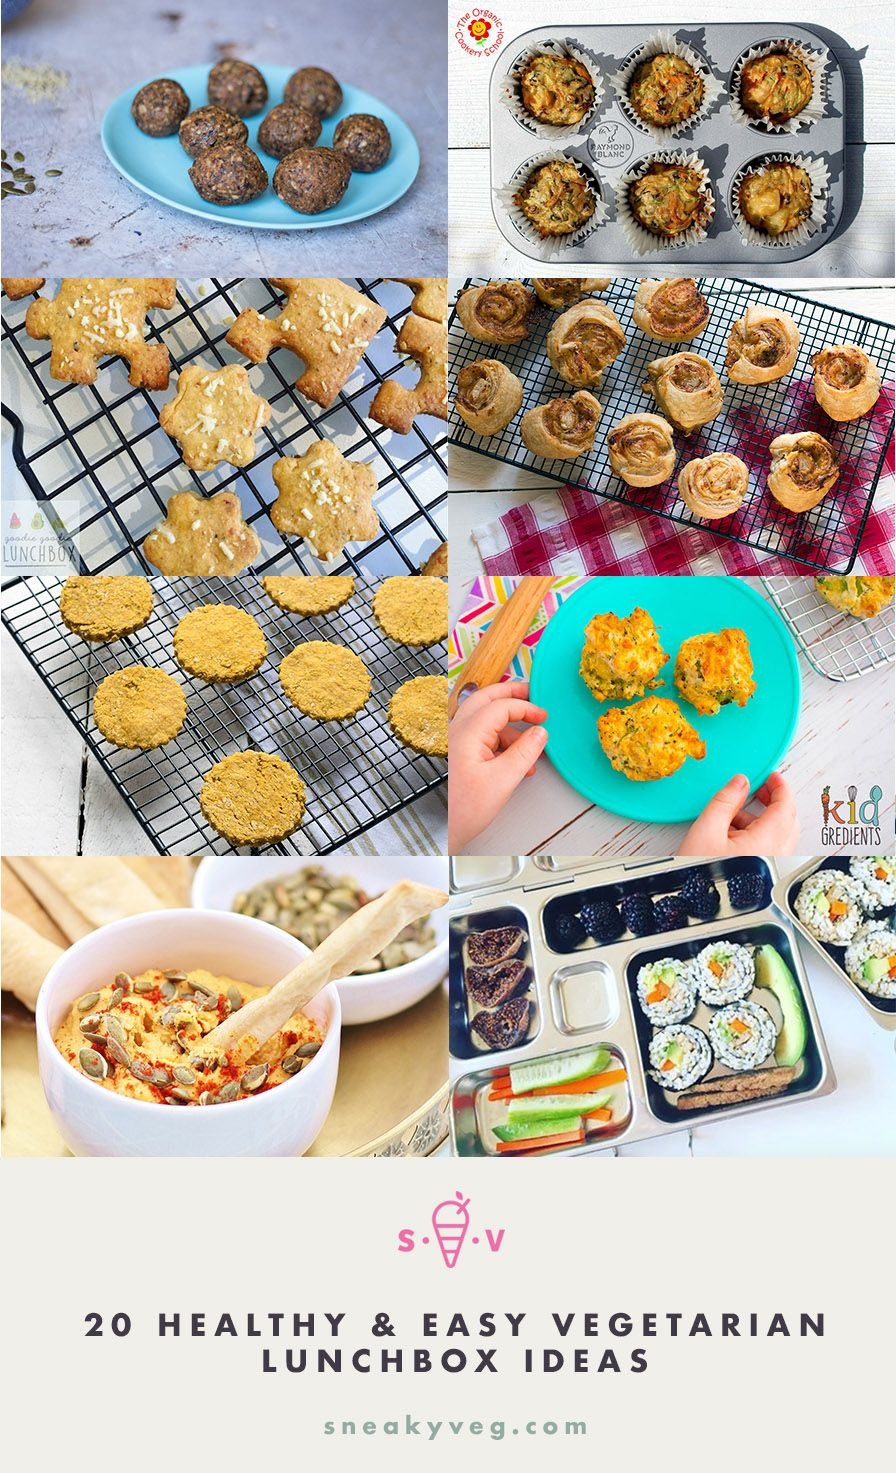 20 easy healthy and nut free vegetarian lunch box ideas for kids